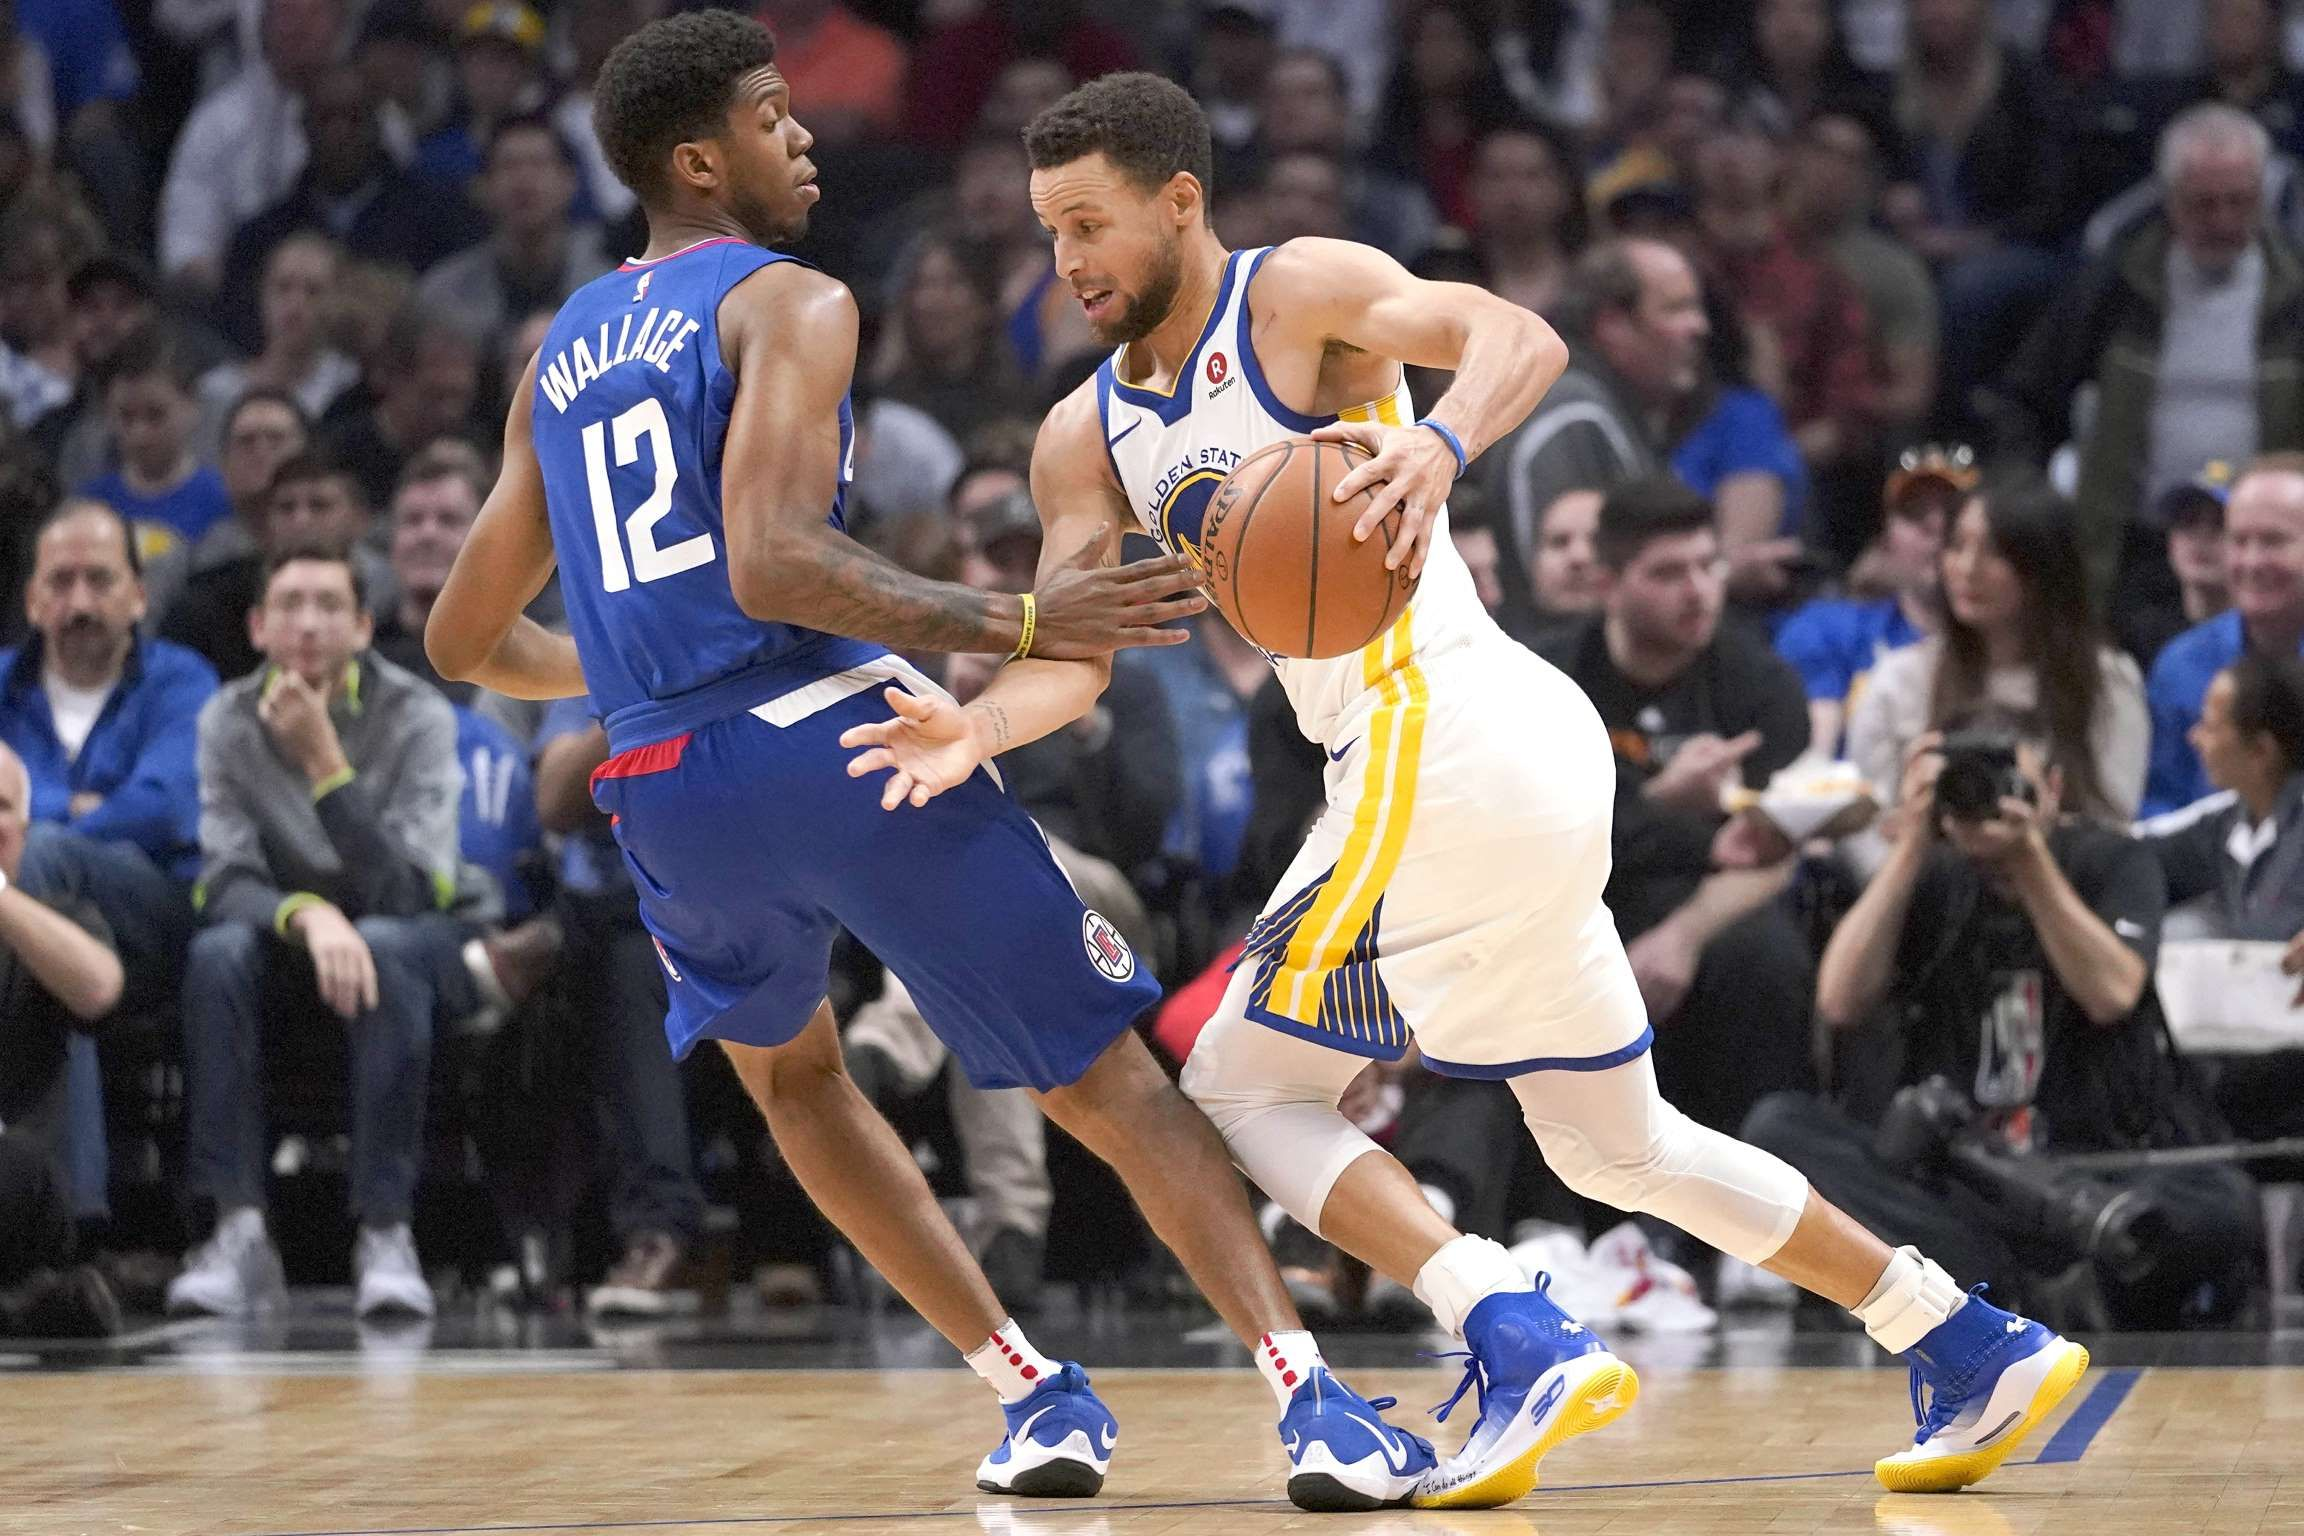 eee827906155 Golden State Warriors at Los Angeles Clippers - Kelvin Kuo-USA TODAY Sports  Reuters